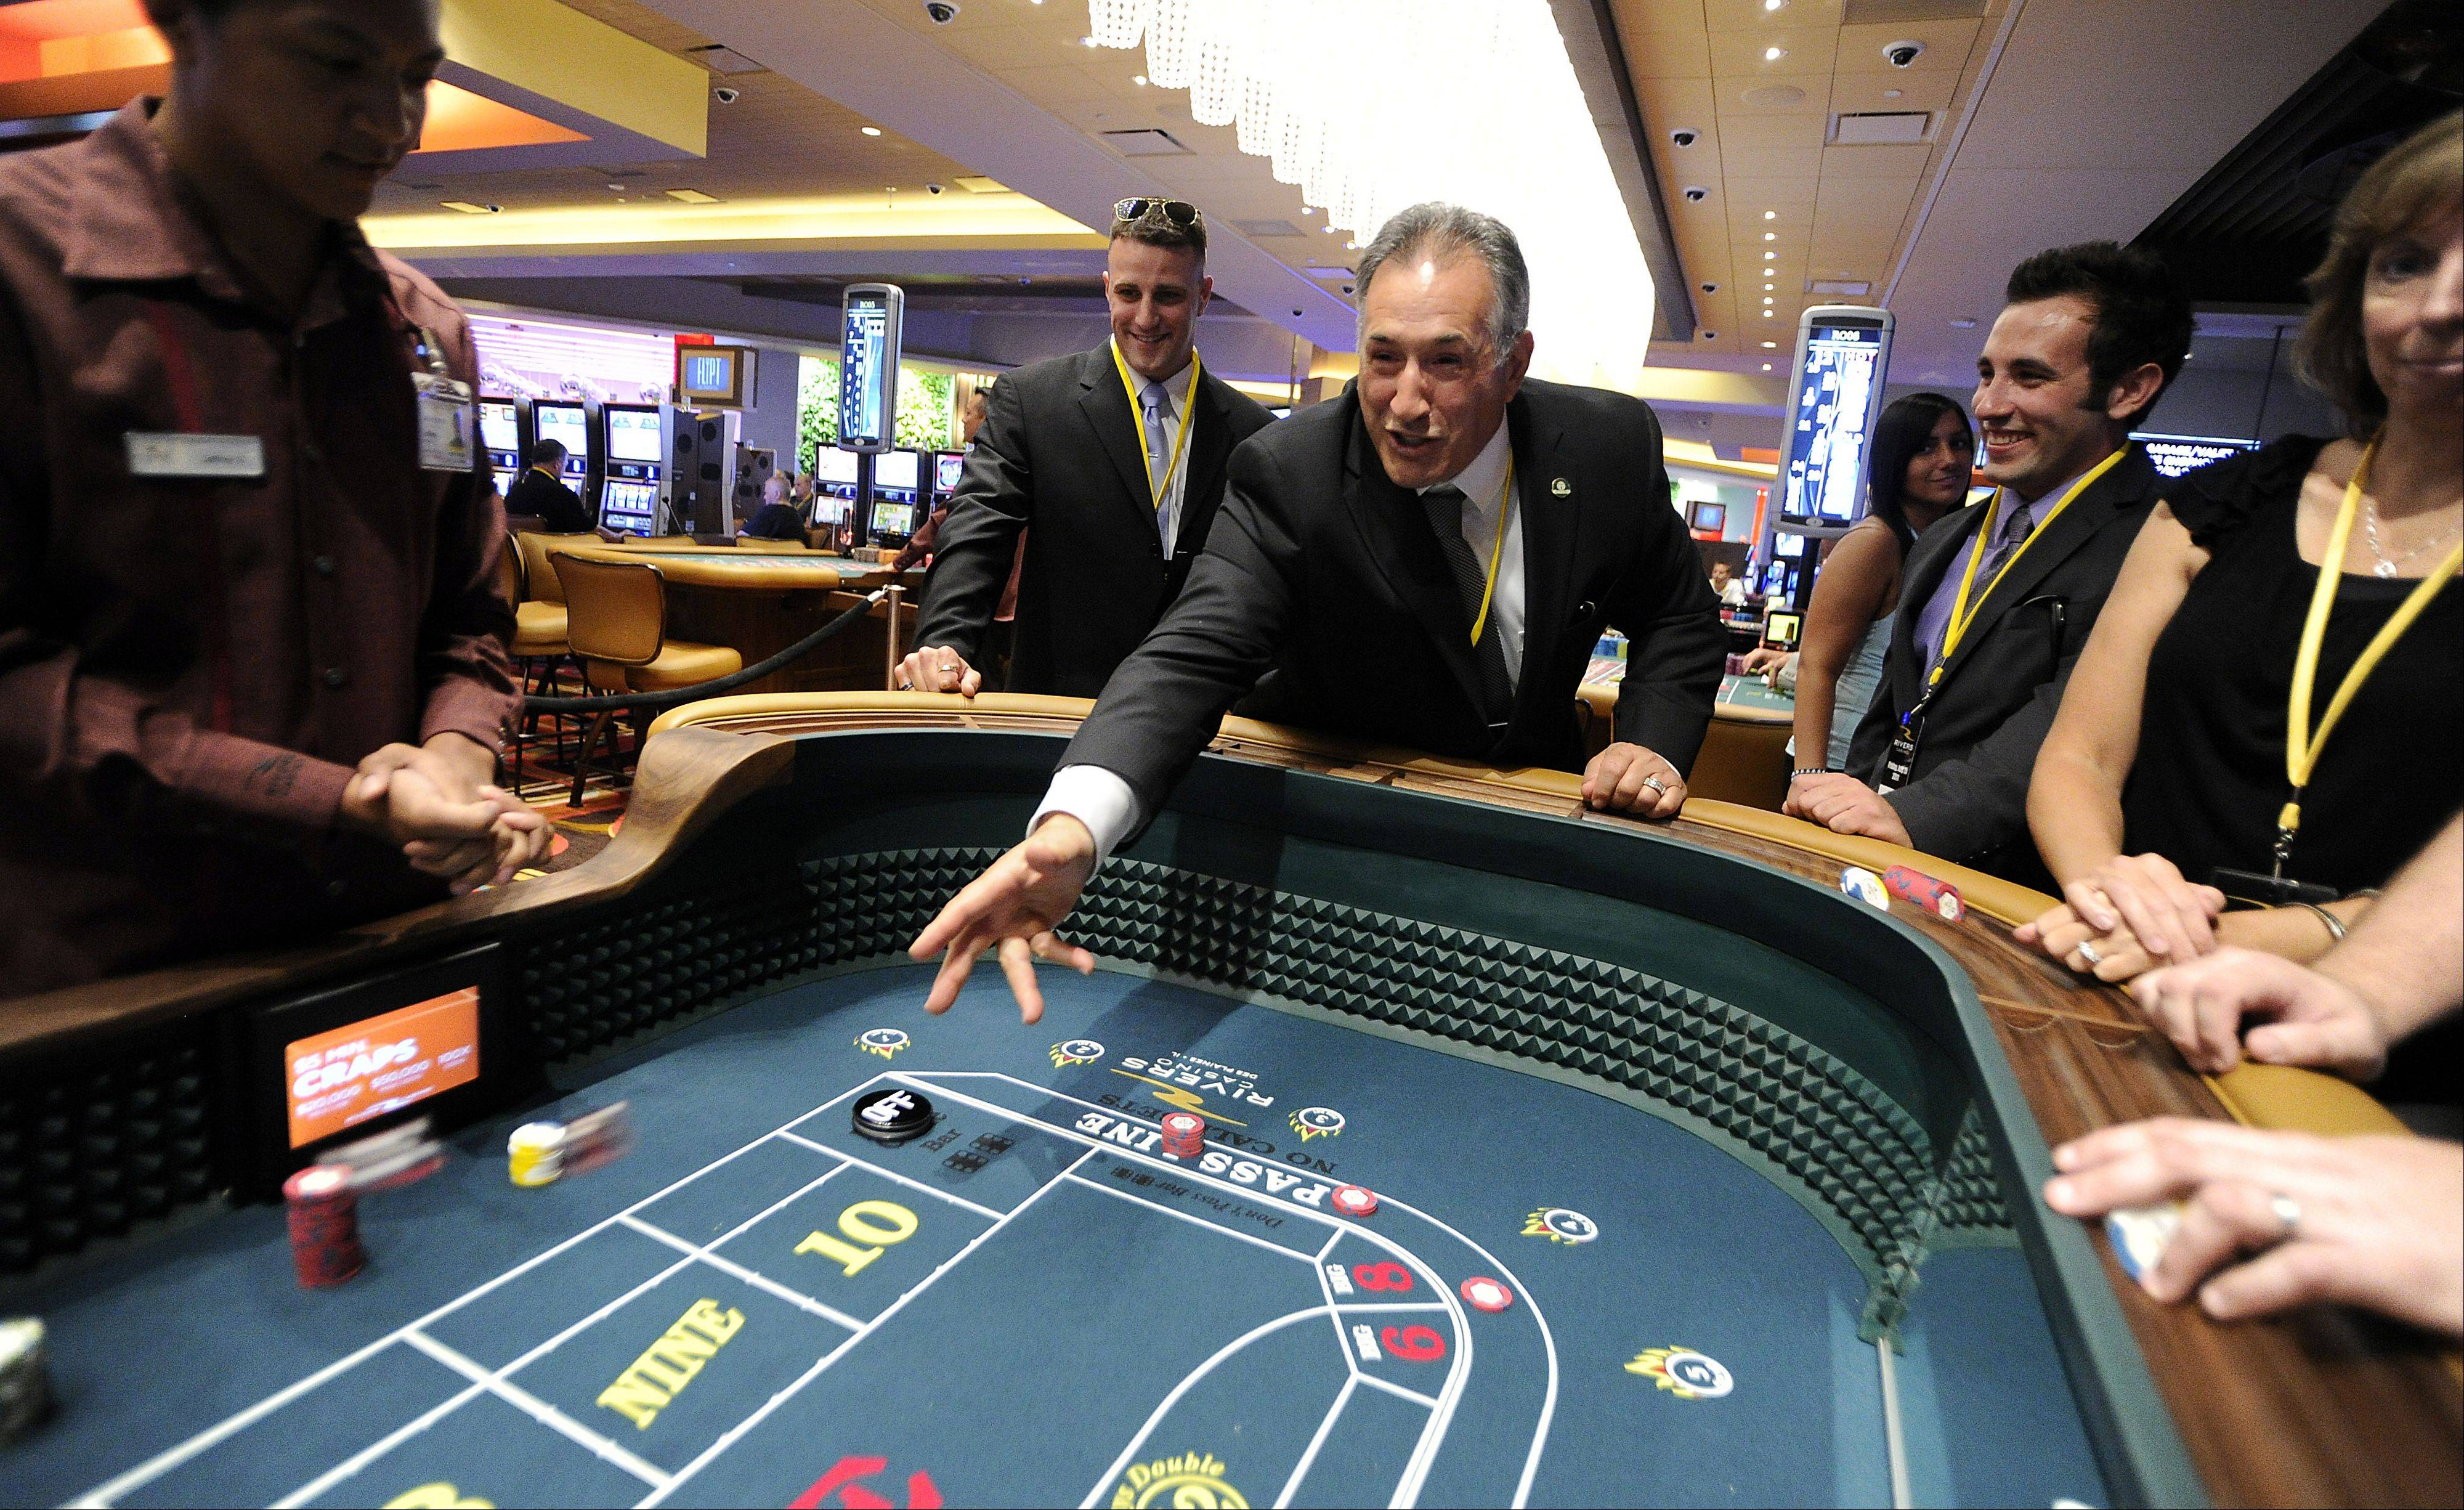 Des Plaines Mayor Martin Moylan throws the dice at 5 pm to signal the opening of the Rivers Casino.